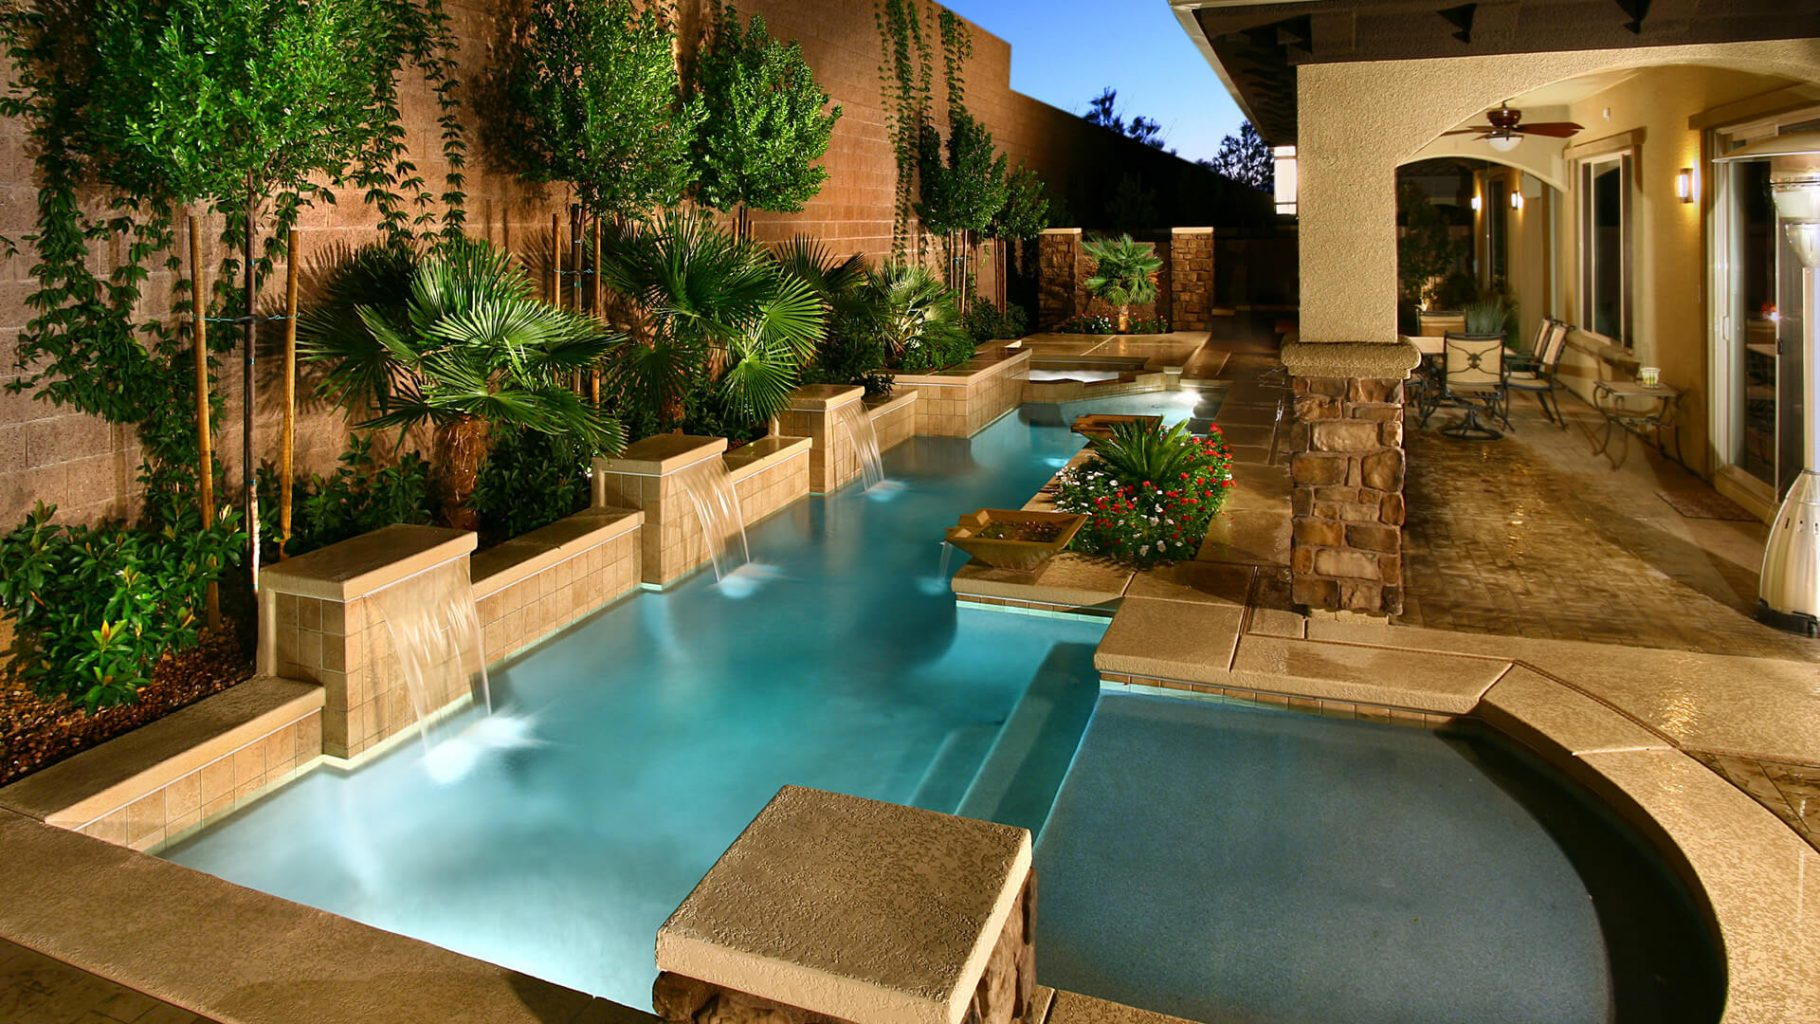 Clarity Pool Service Custom Swimming Pool Design & Construction Services of Las Vegas, Nevada